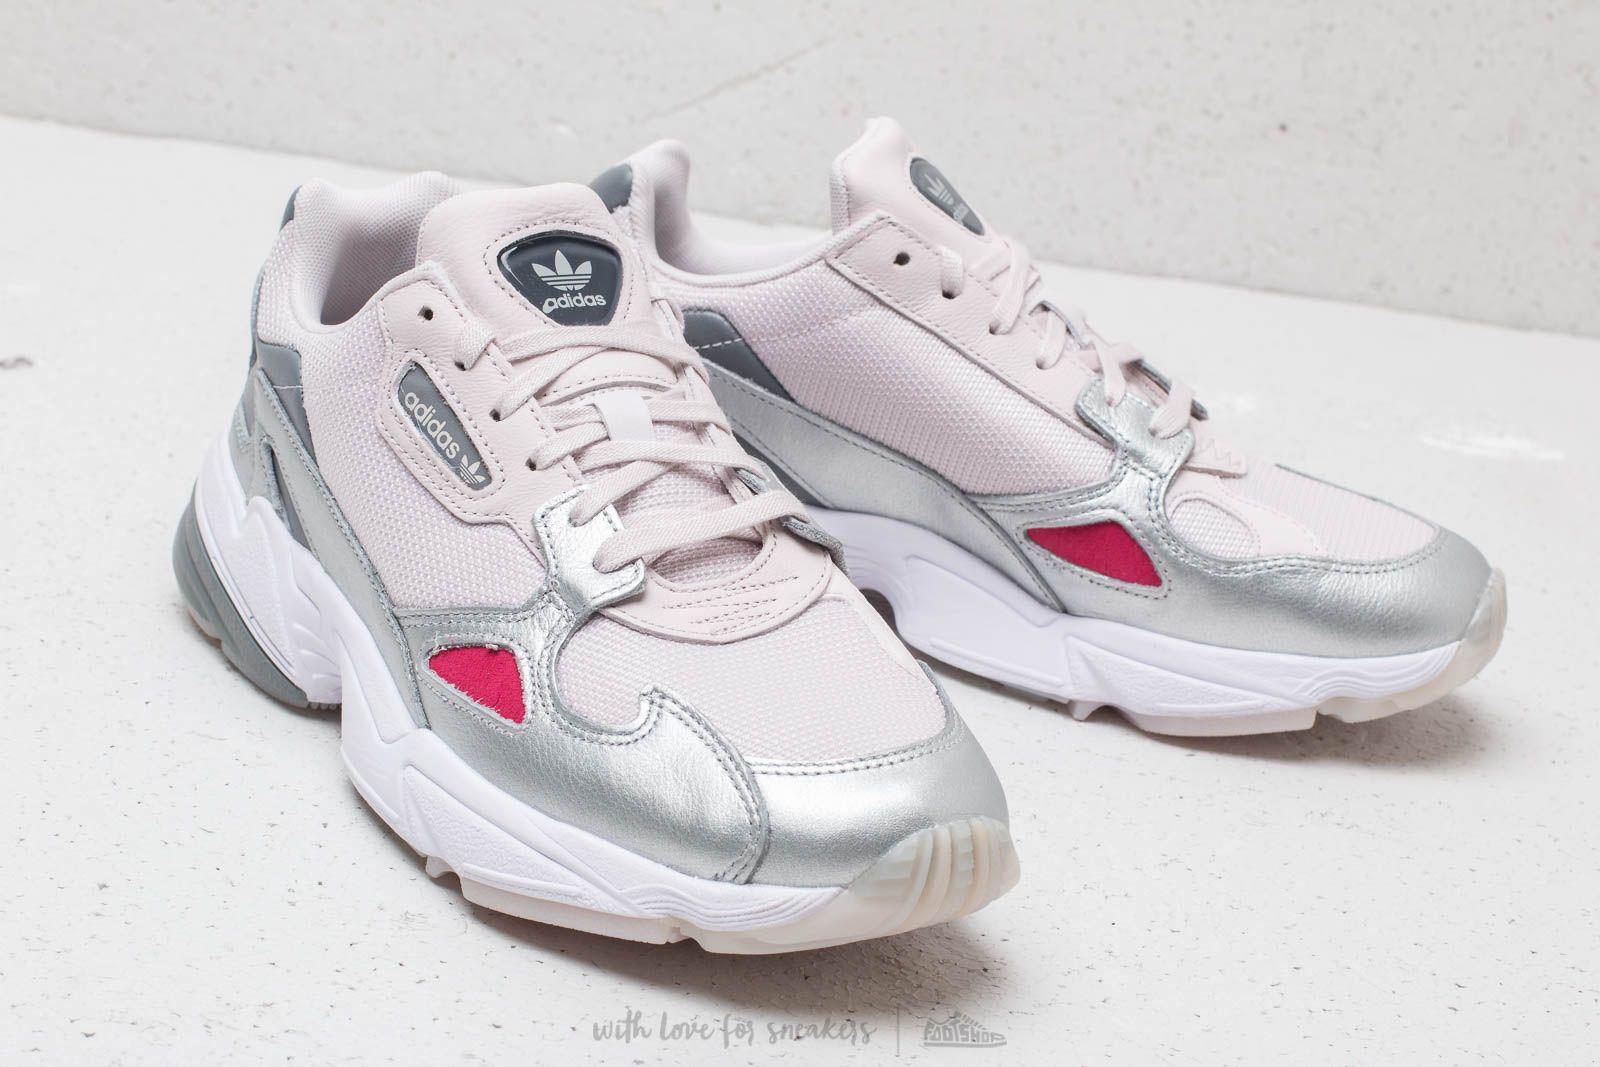 new arrival 6df96 bb38a Lyst - adidas Originals Adidas Falcon W Orchid Tint Orchid T